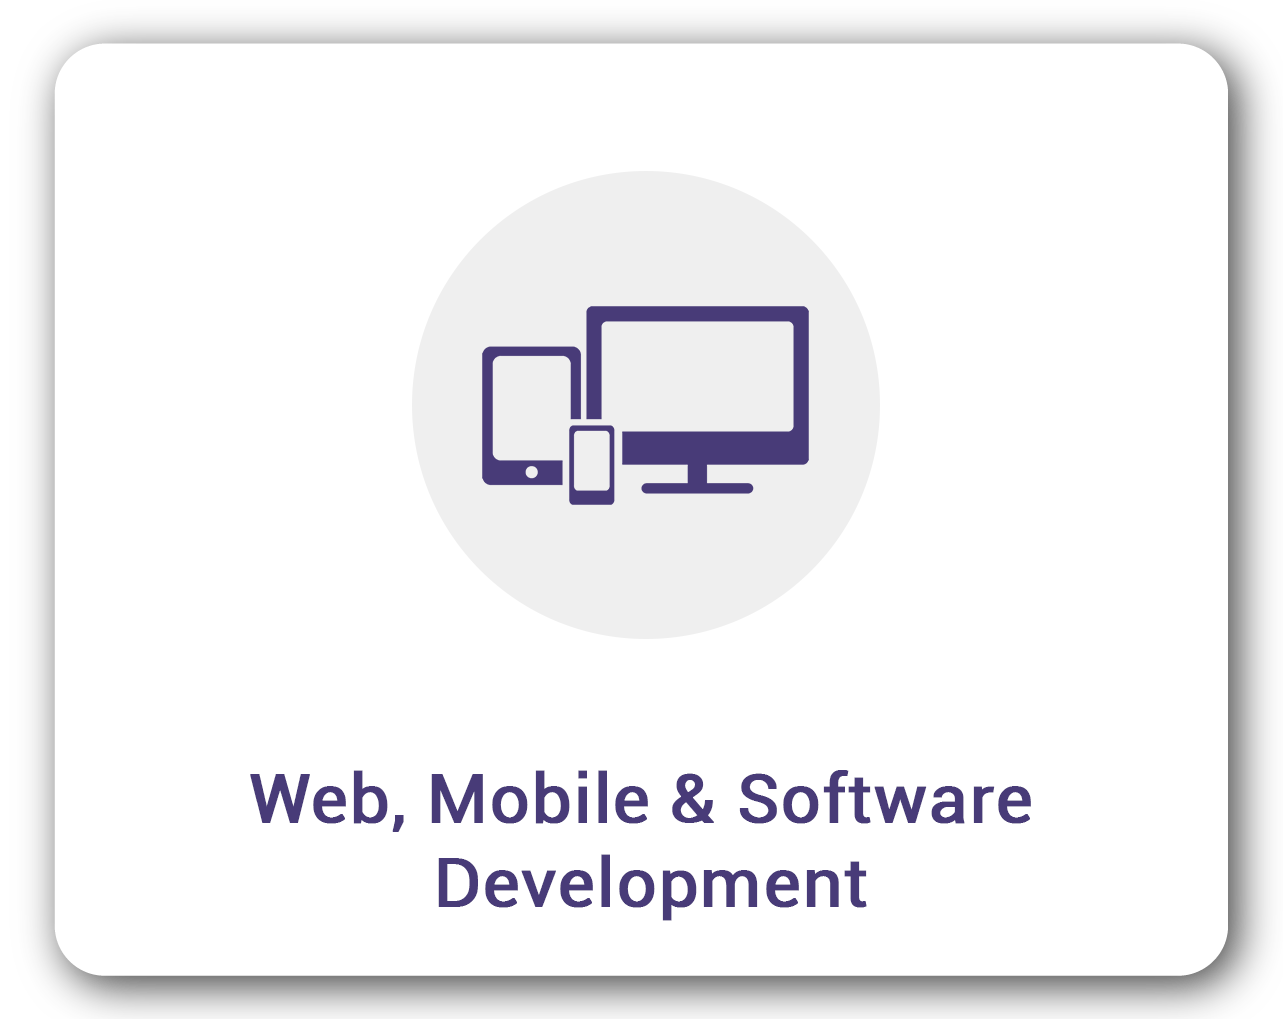 Web, Mobile & Software Development